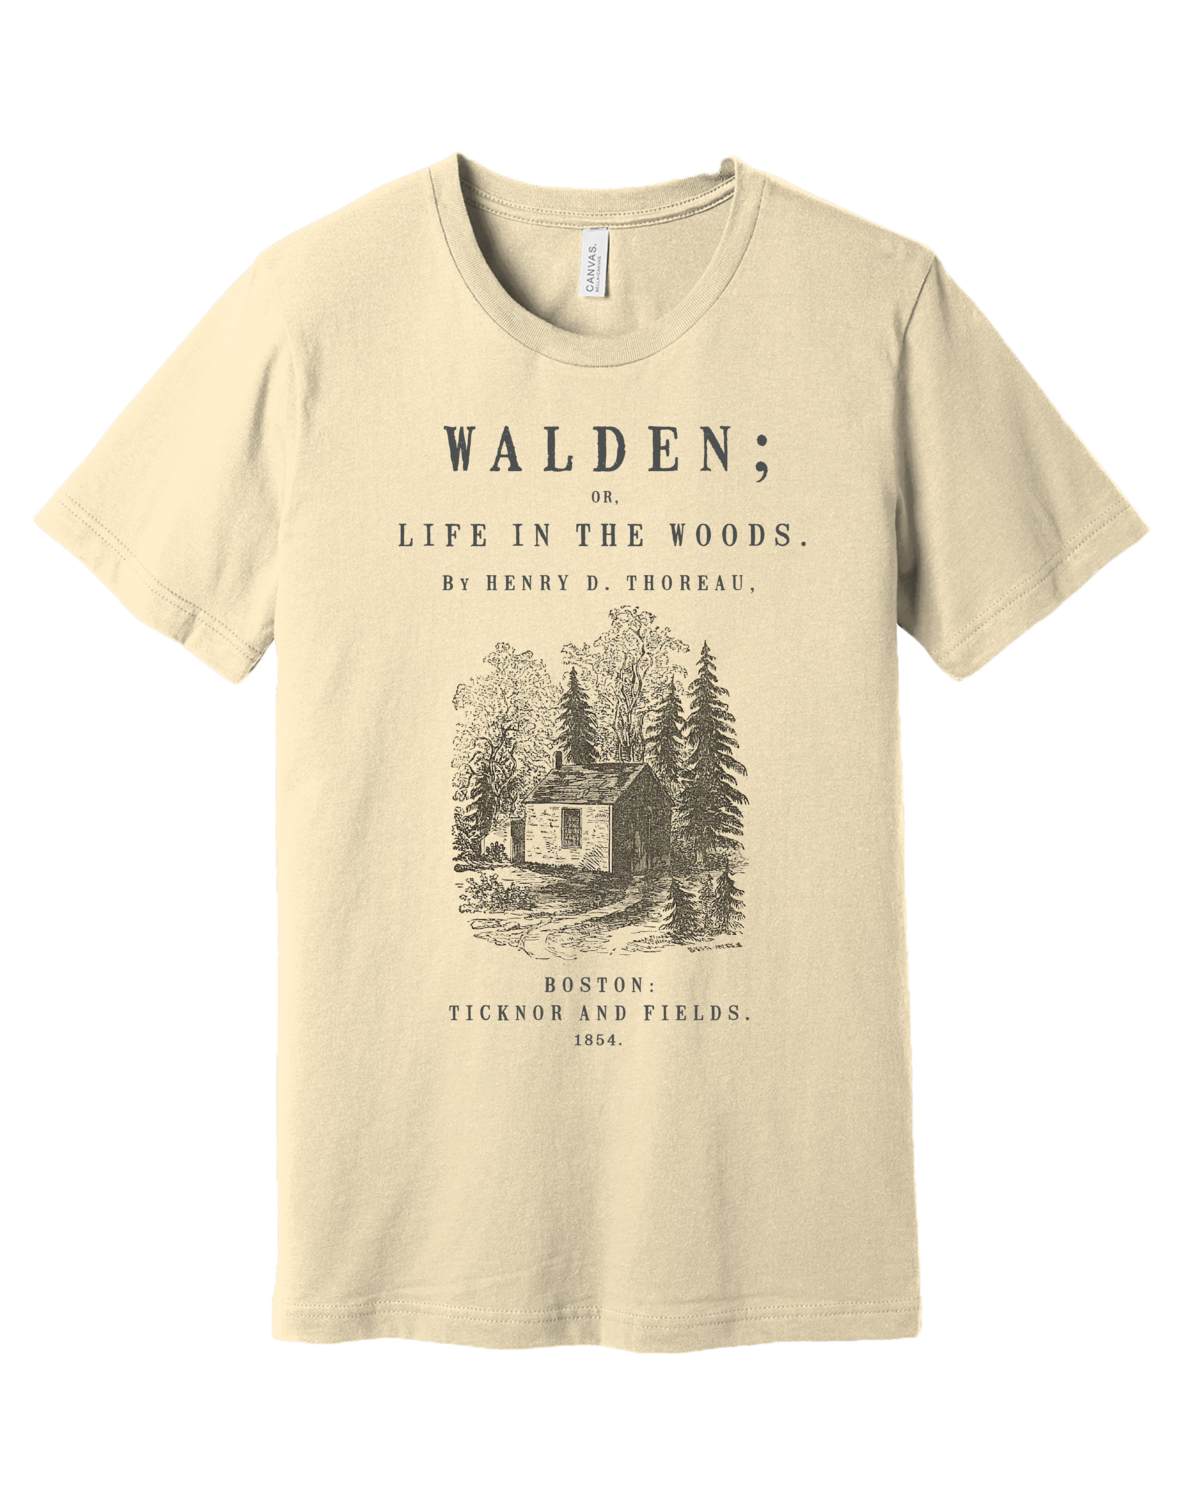 Walden by Henry David Thoreau Shirt